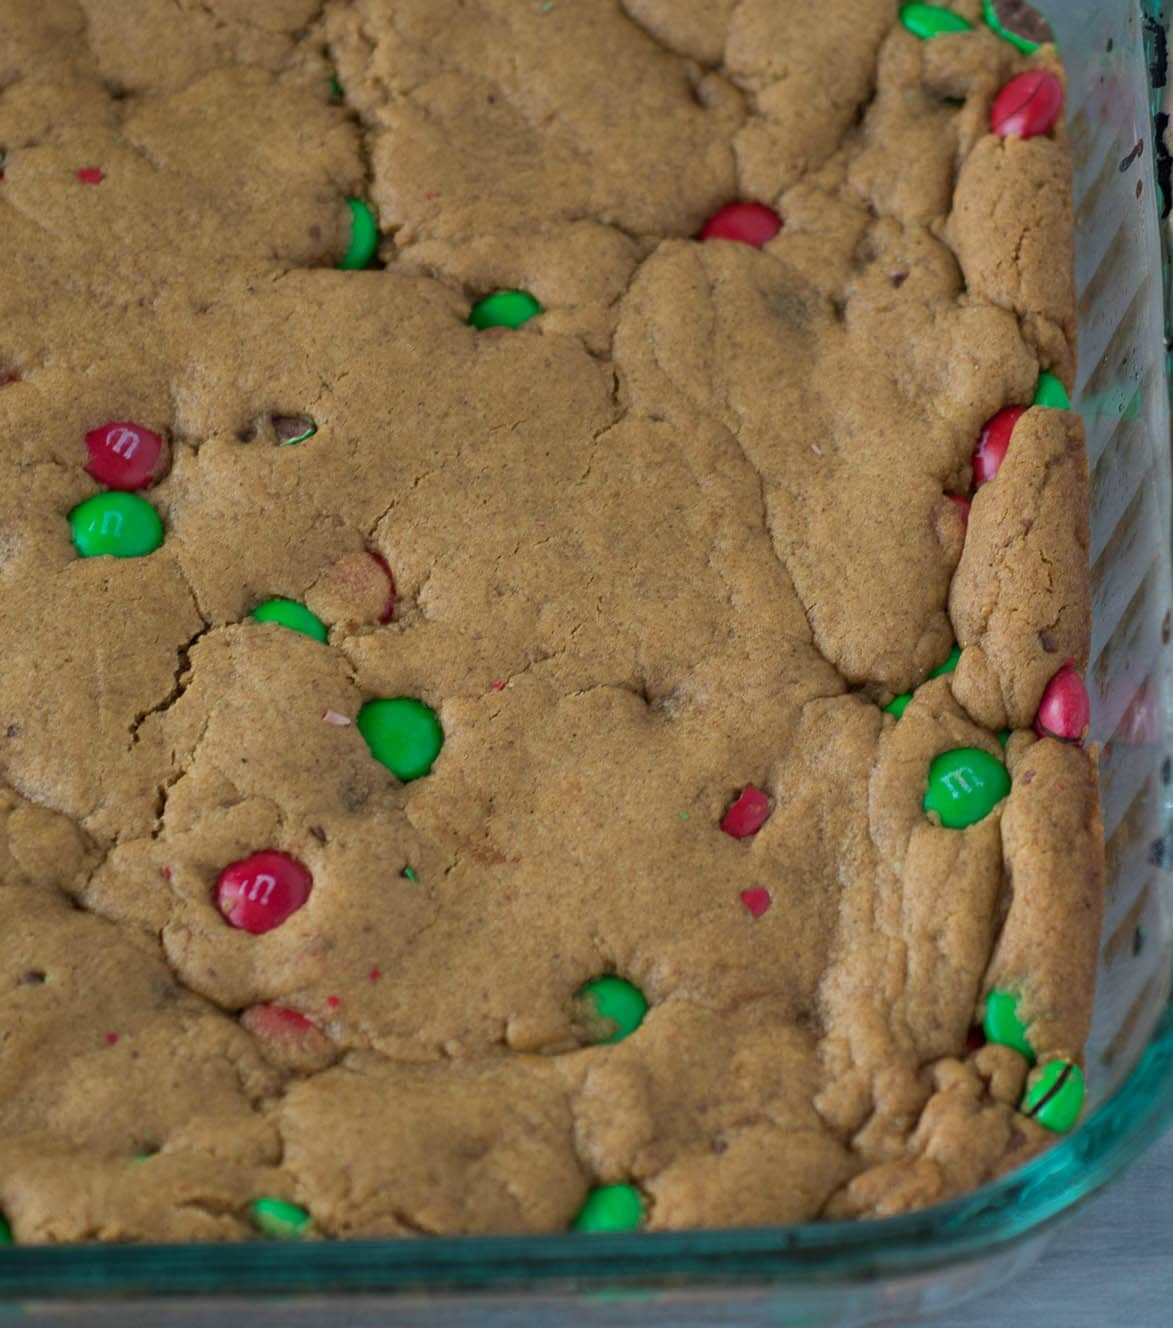 Gingerbread Bars | Easy Gingerbread Bars Recipe | Chewy Bars | Cookie Bars with M&M's | Holiday Baking | Christmas Cookies